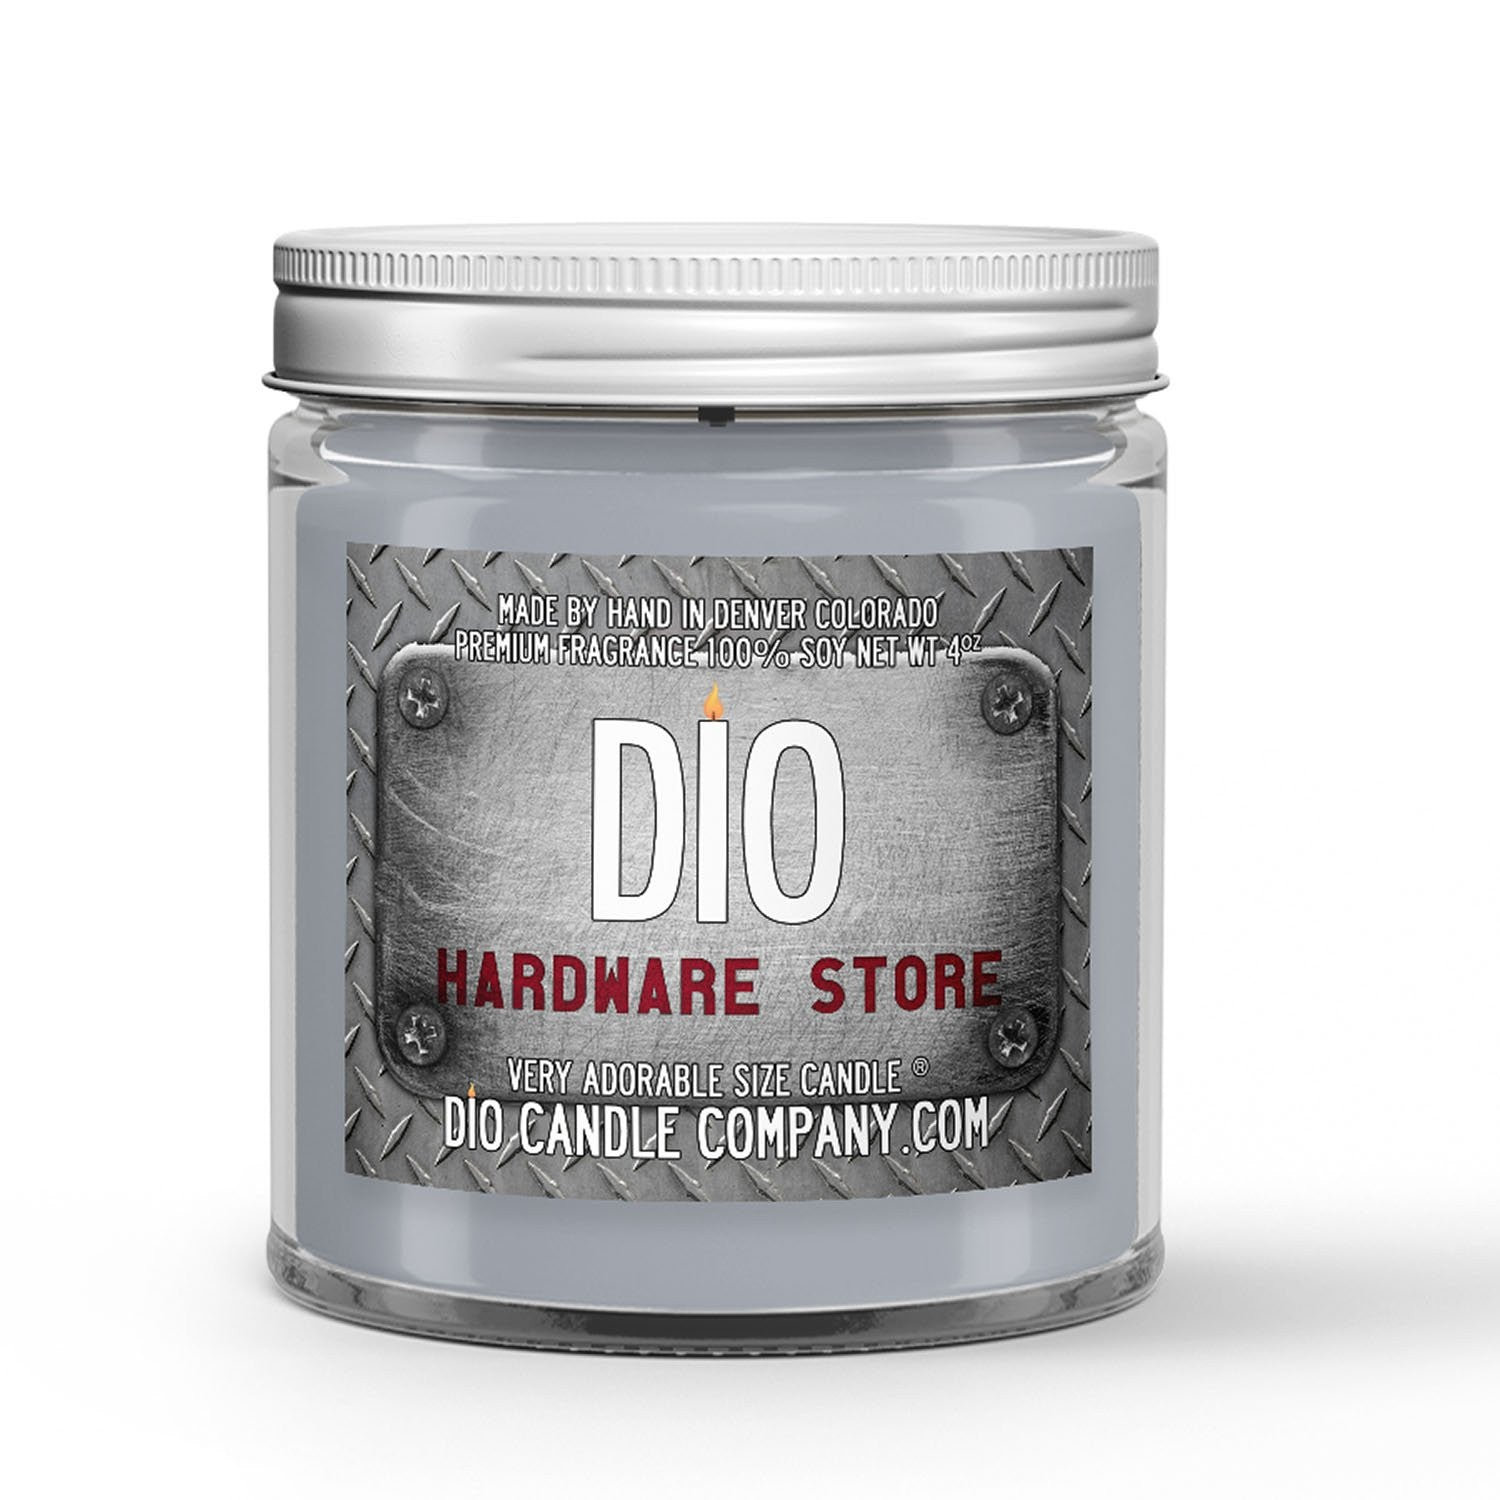 Hardware Store Candle - Paint Mixers - Wooden Dowels - Dusty Metal Shelves - 4oz Very Adorable Size Candle® - Dio Candle Company